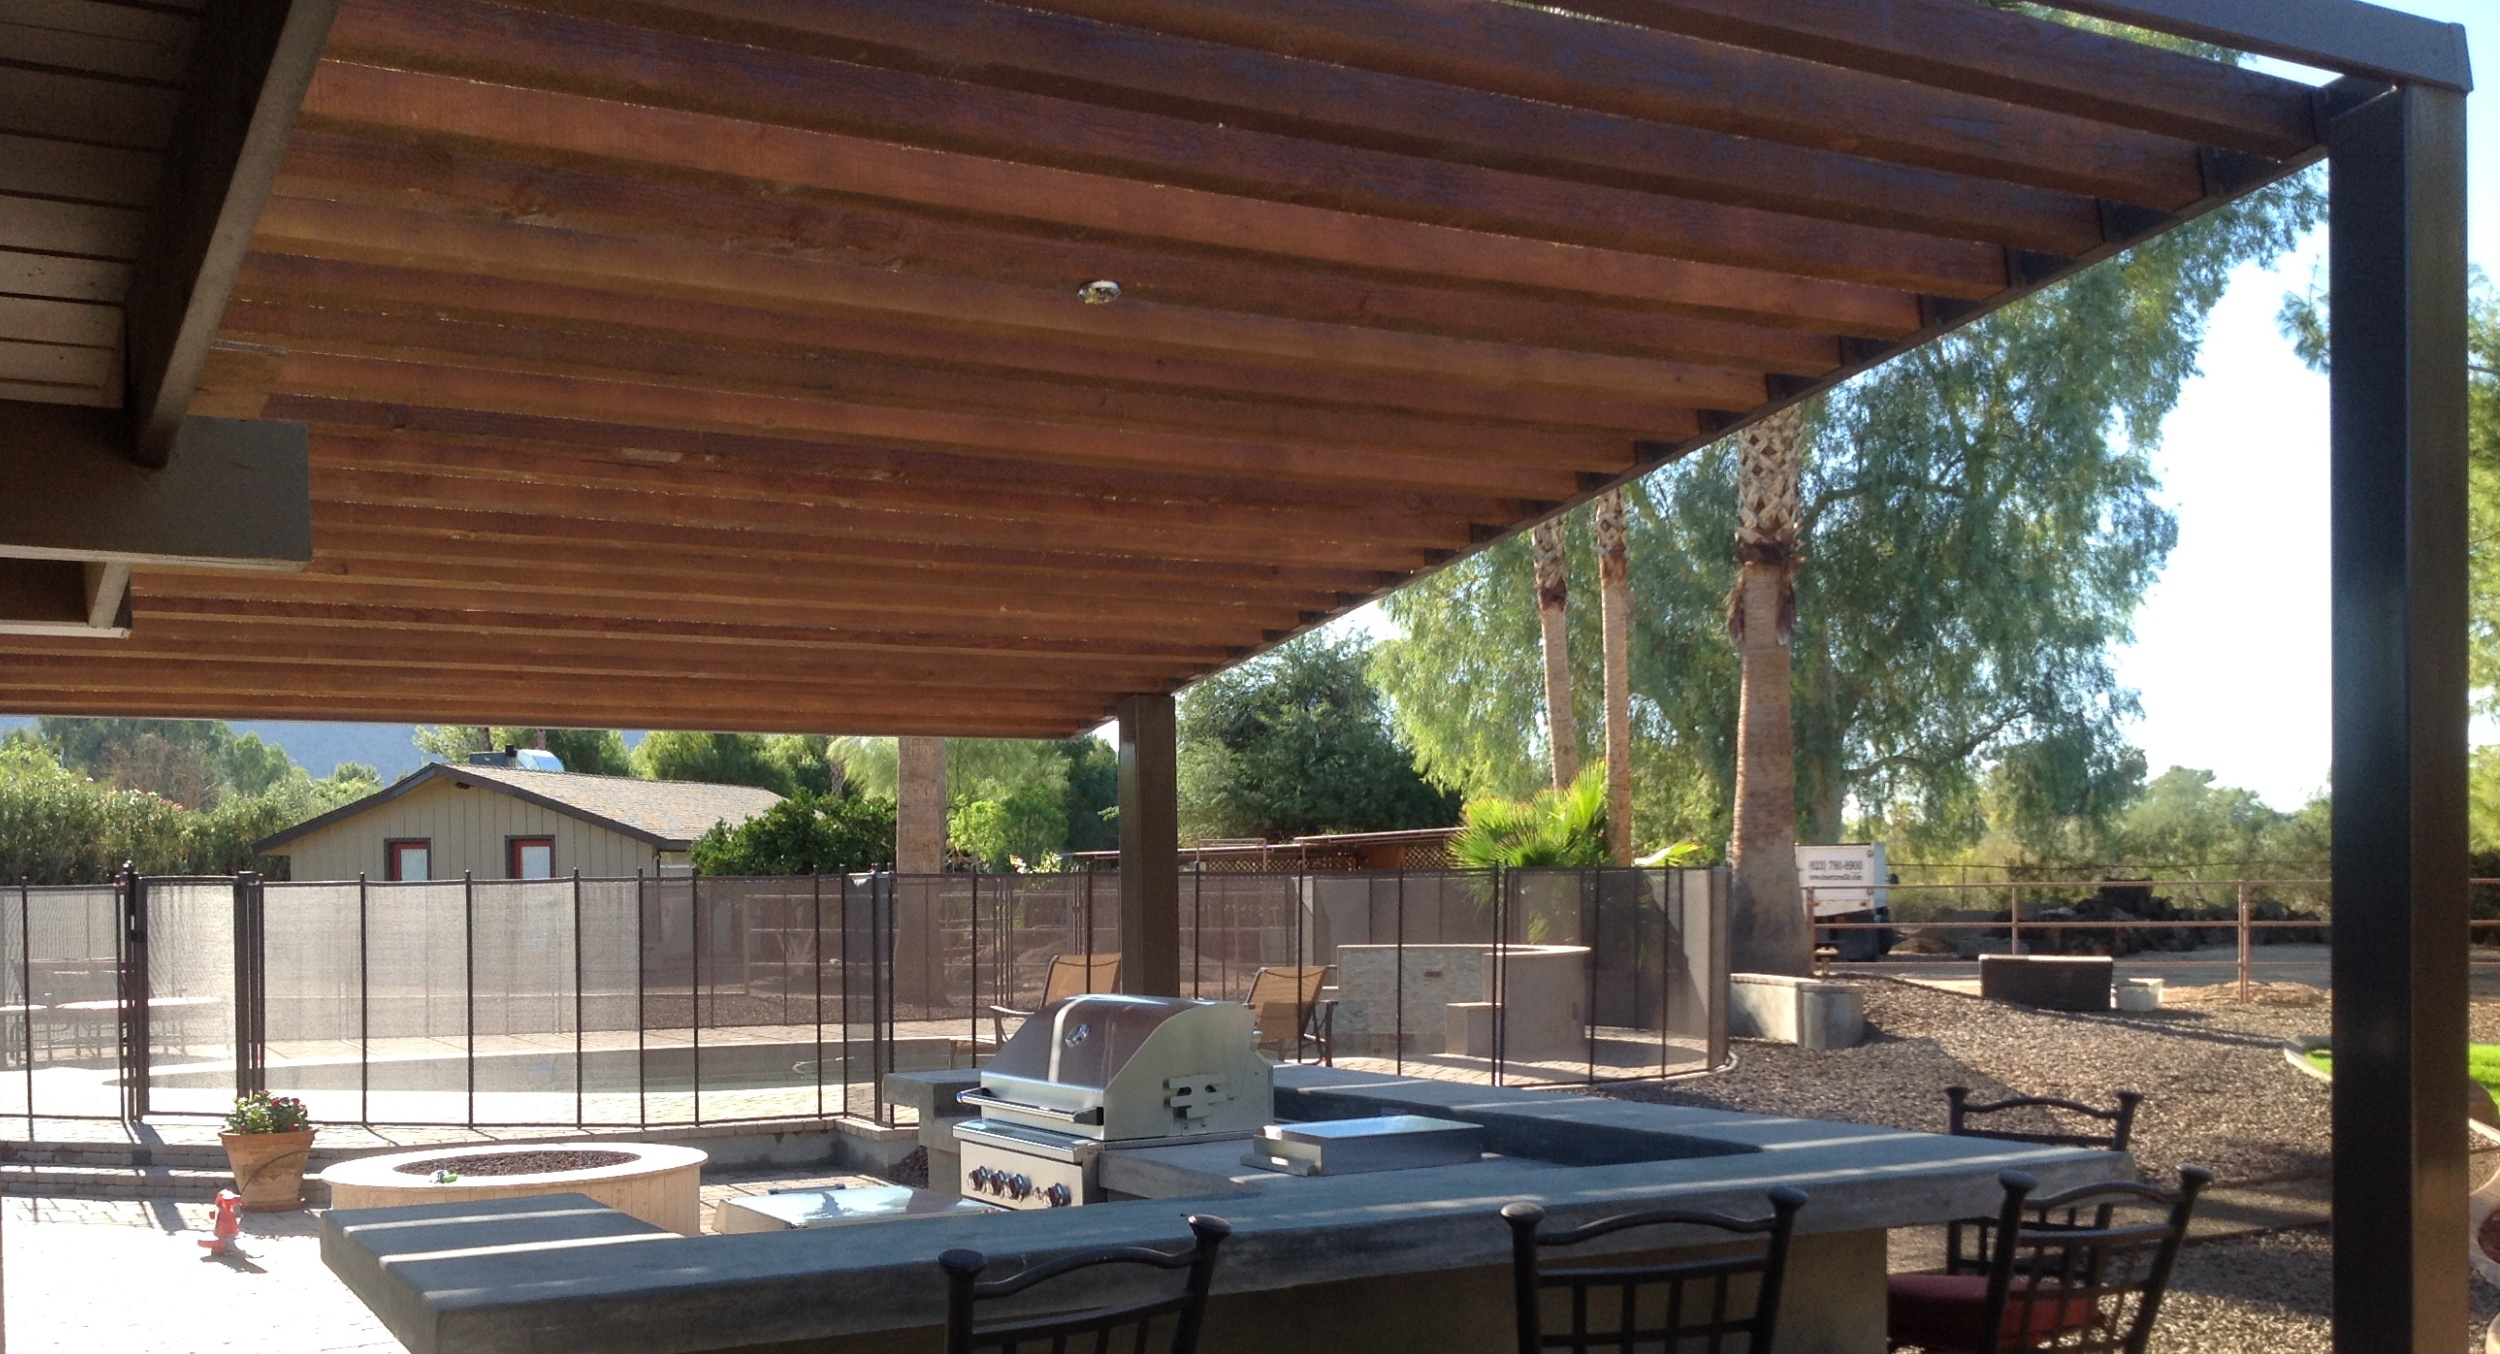 This specially engineered Scottsdale shade structure's a huge asset for this client's new built-in grill and bar area. Dense shade, not interrupted sunshine, makes for highly enjoyable Scottsdale patio design.